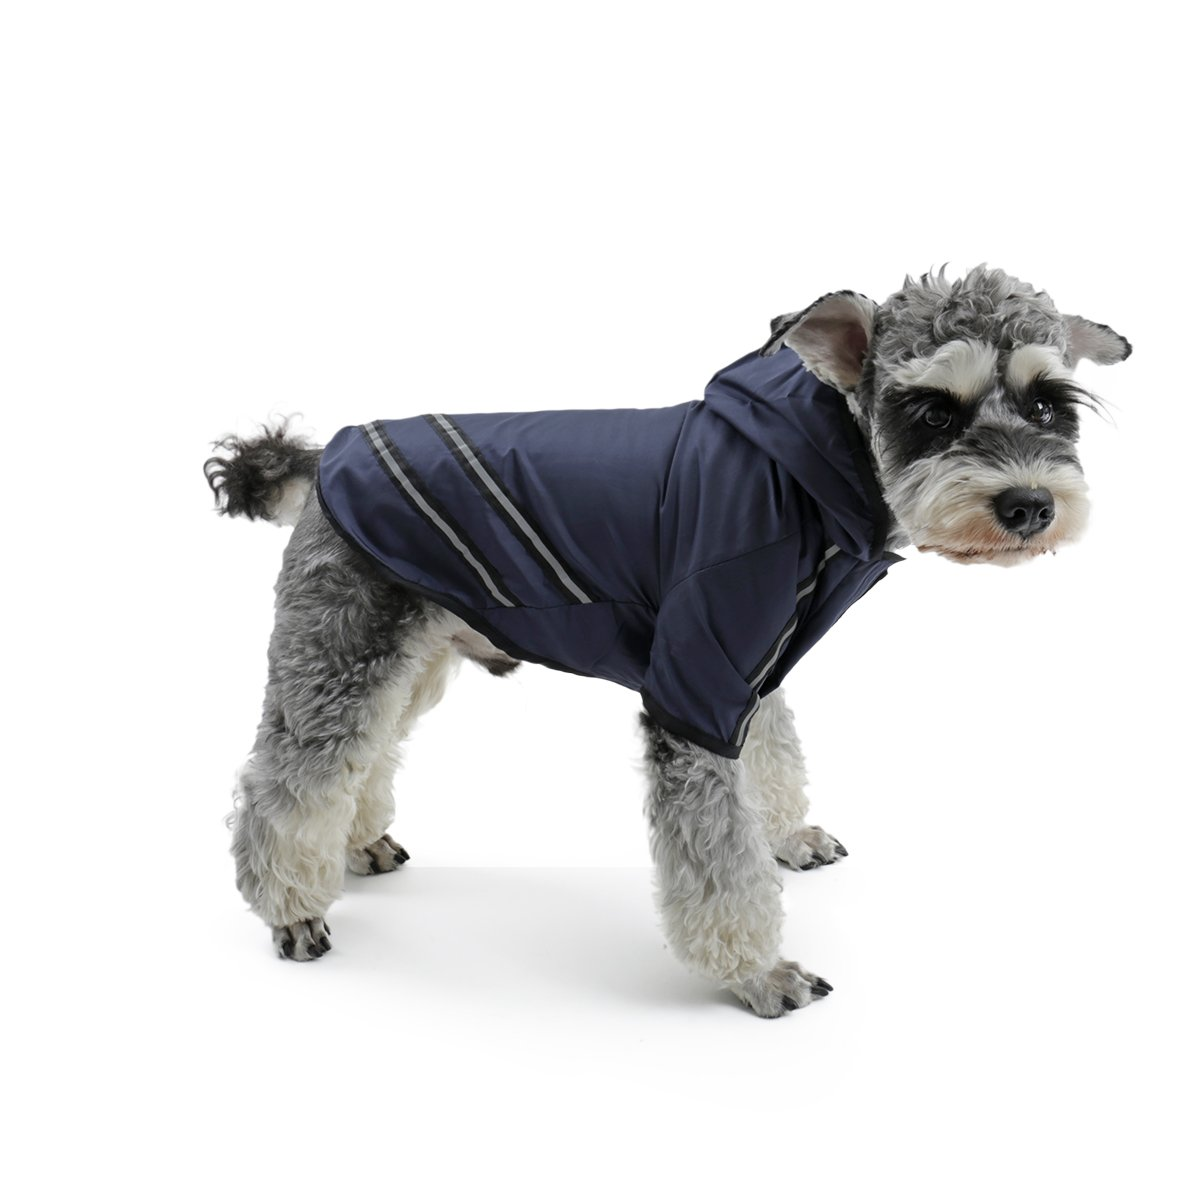 Speedy Pet Dog Hoodie Raincoat Jacket, Dog Rain Poncho Coat Outdoor Waterproof Apparel Clothes with Safe Reflective Strip